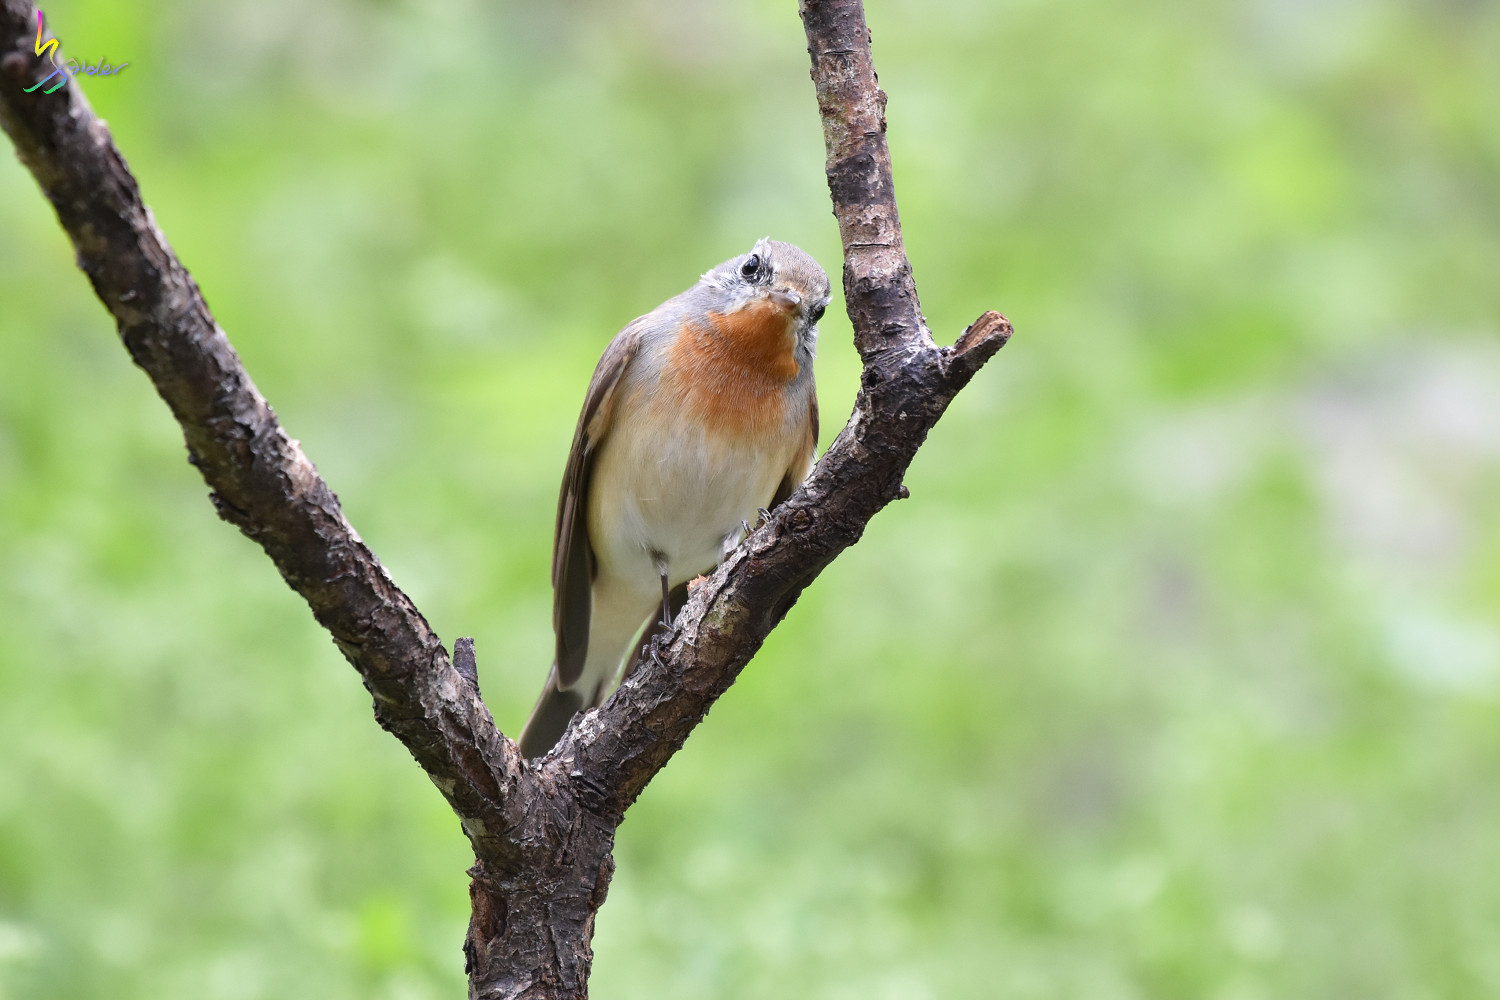 Red-breasted_Flycatcher_1112